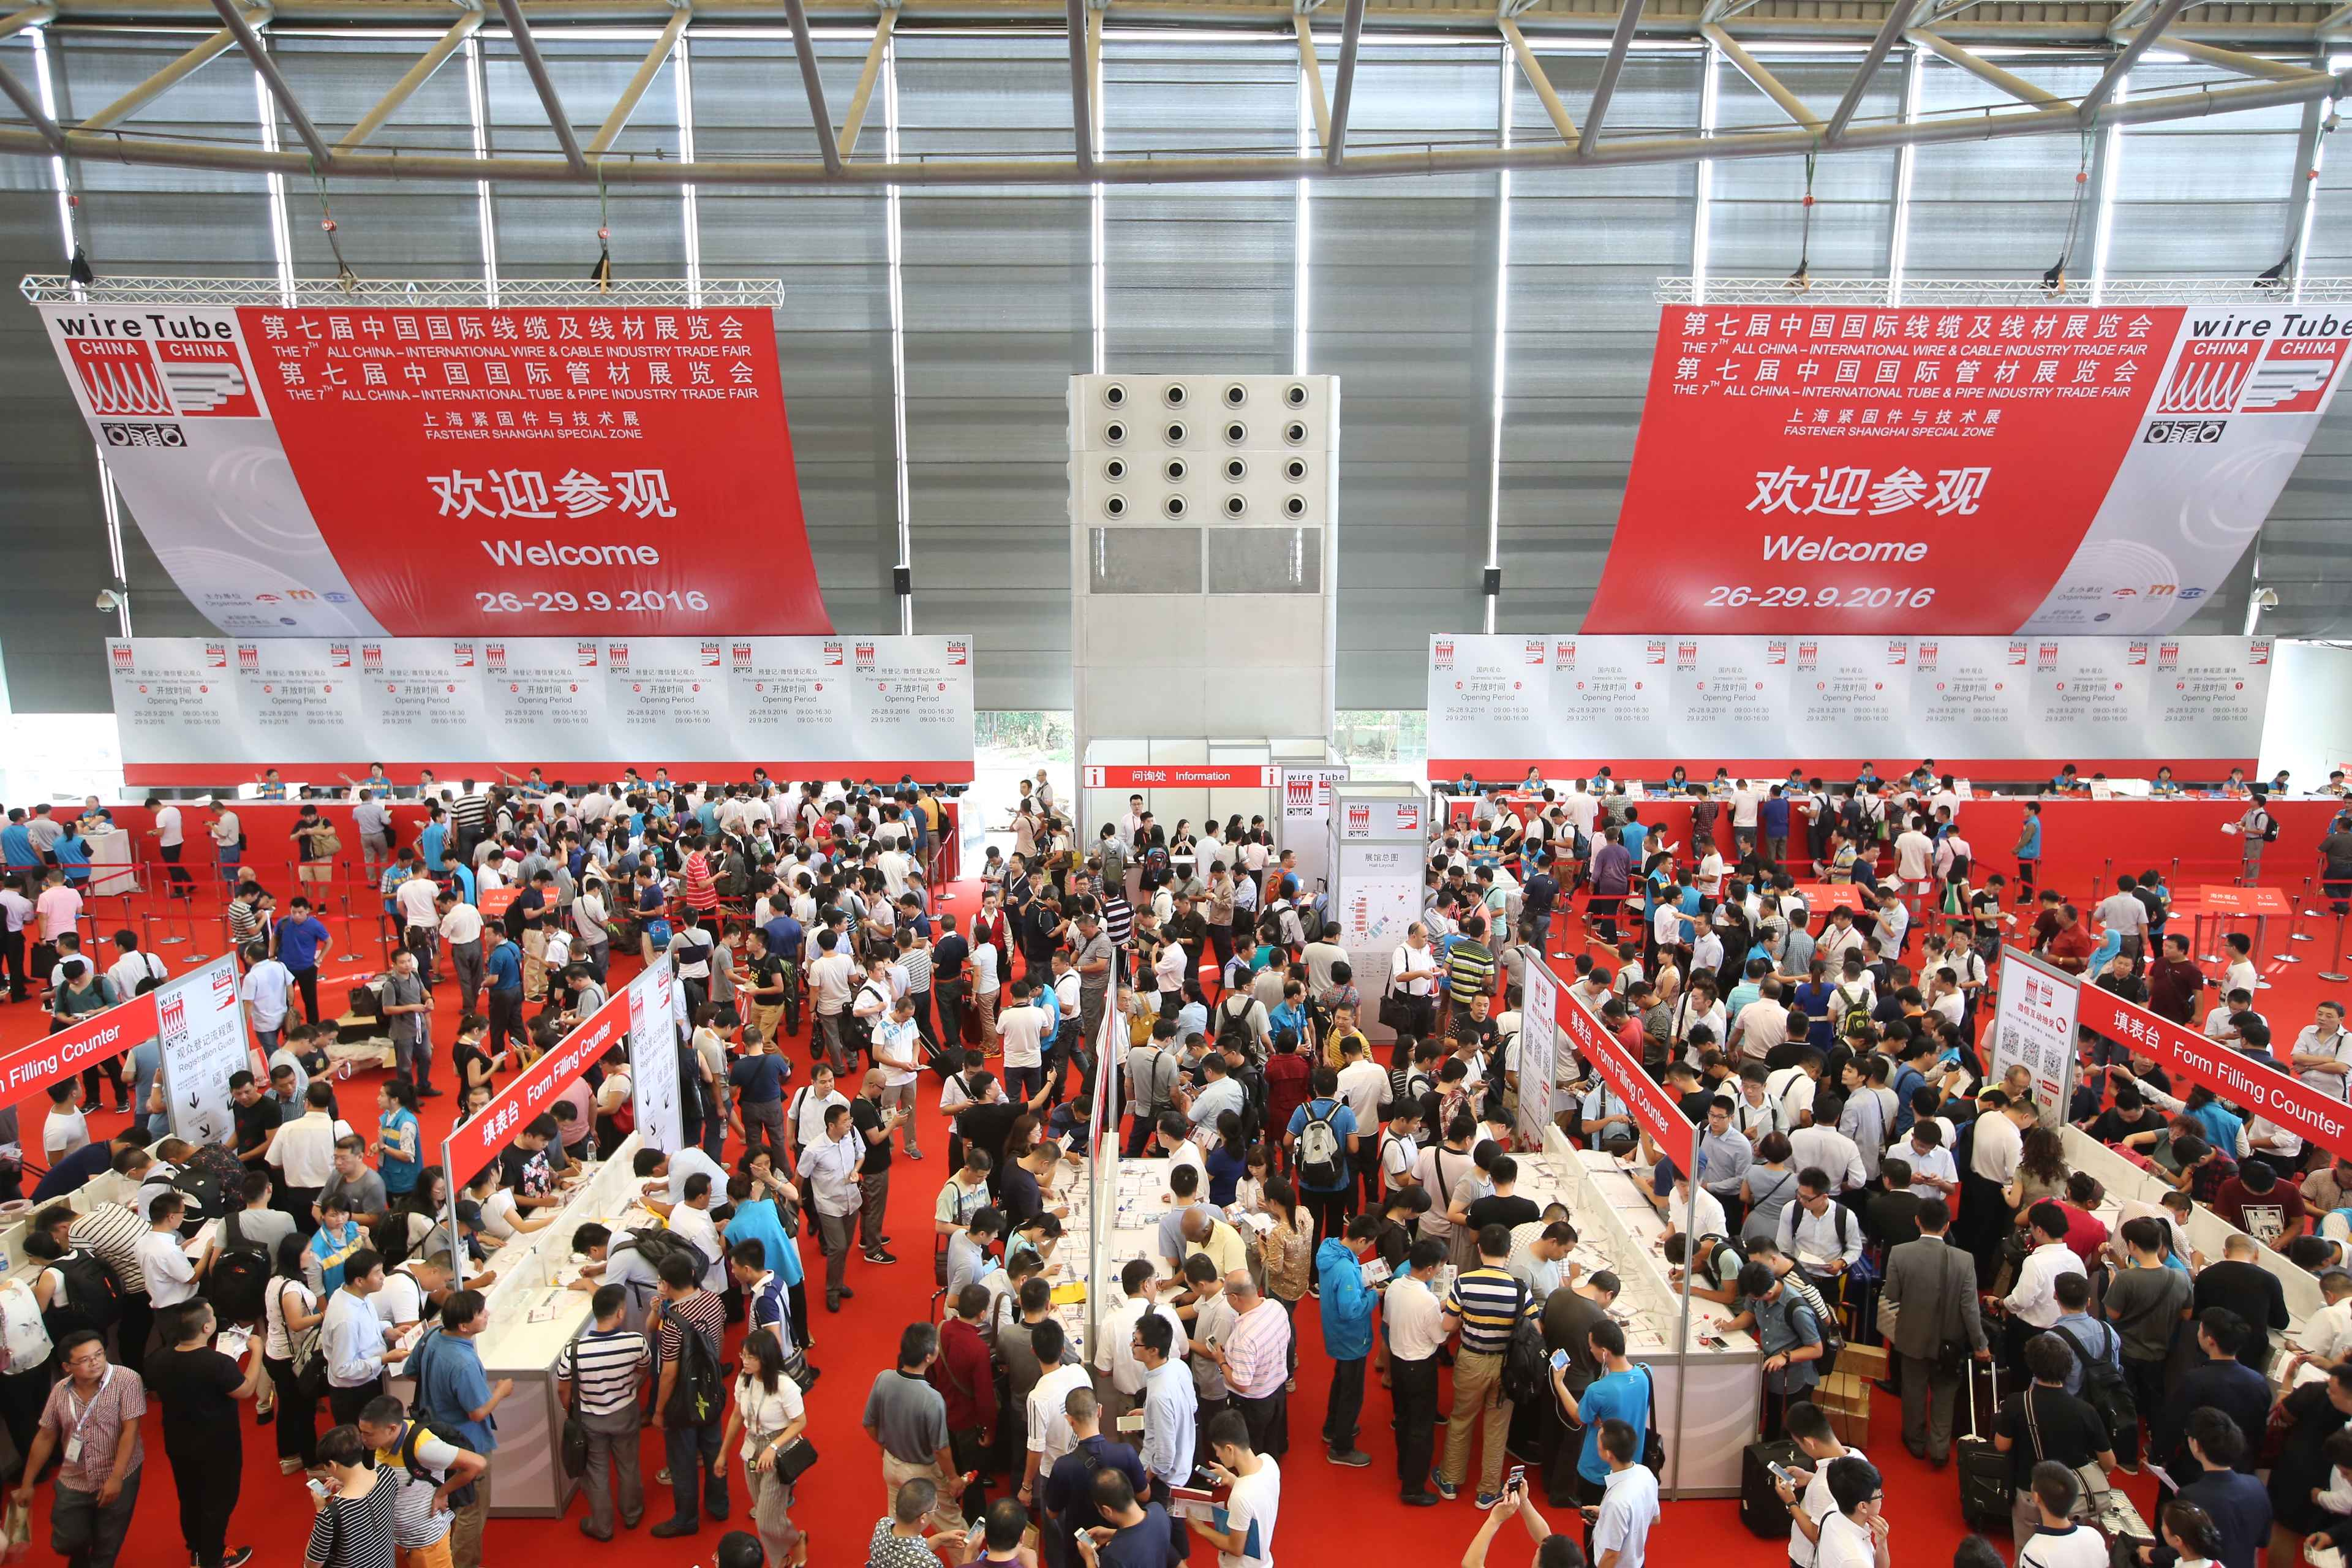 Tube China 2018 with innovative technology highlights